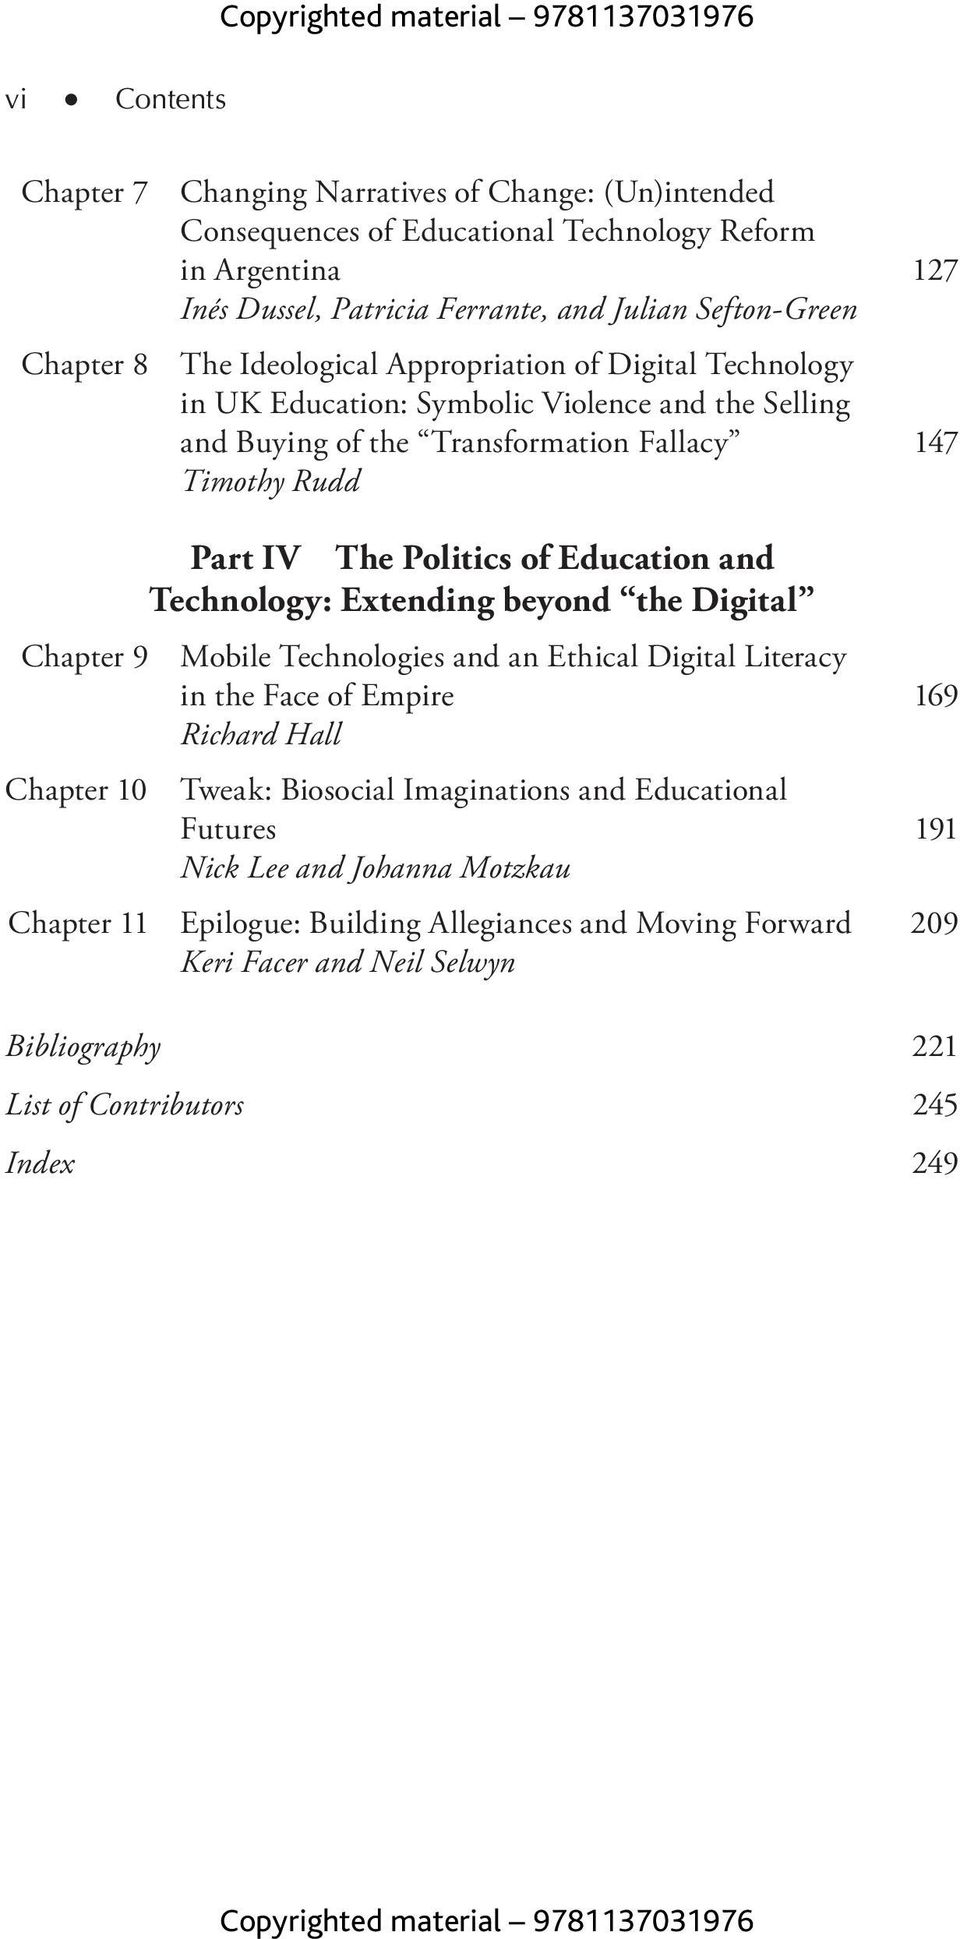 Technology: Extending beyond the Digital Chapter 9 Mobile Technologies and an Ethical Digital Literacy in the Face of Empire 169 Richard Hall C h a pt e r 10 Twe a k : Bio s o c i a l I m a g i n at